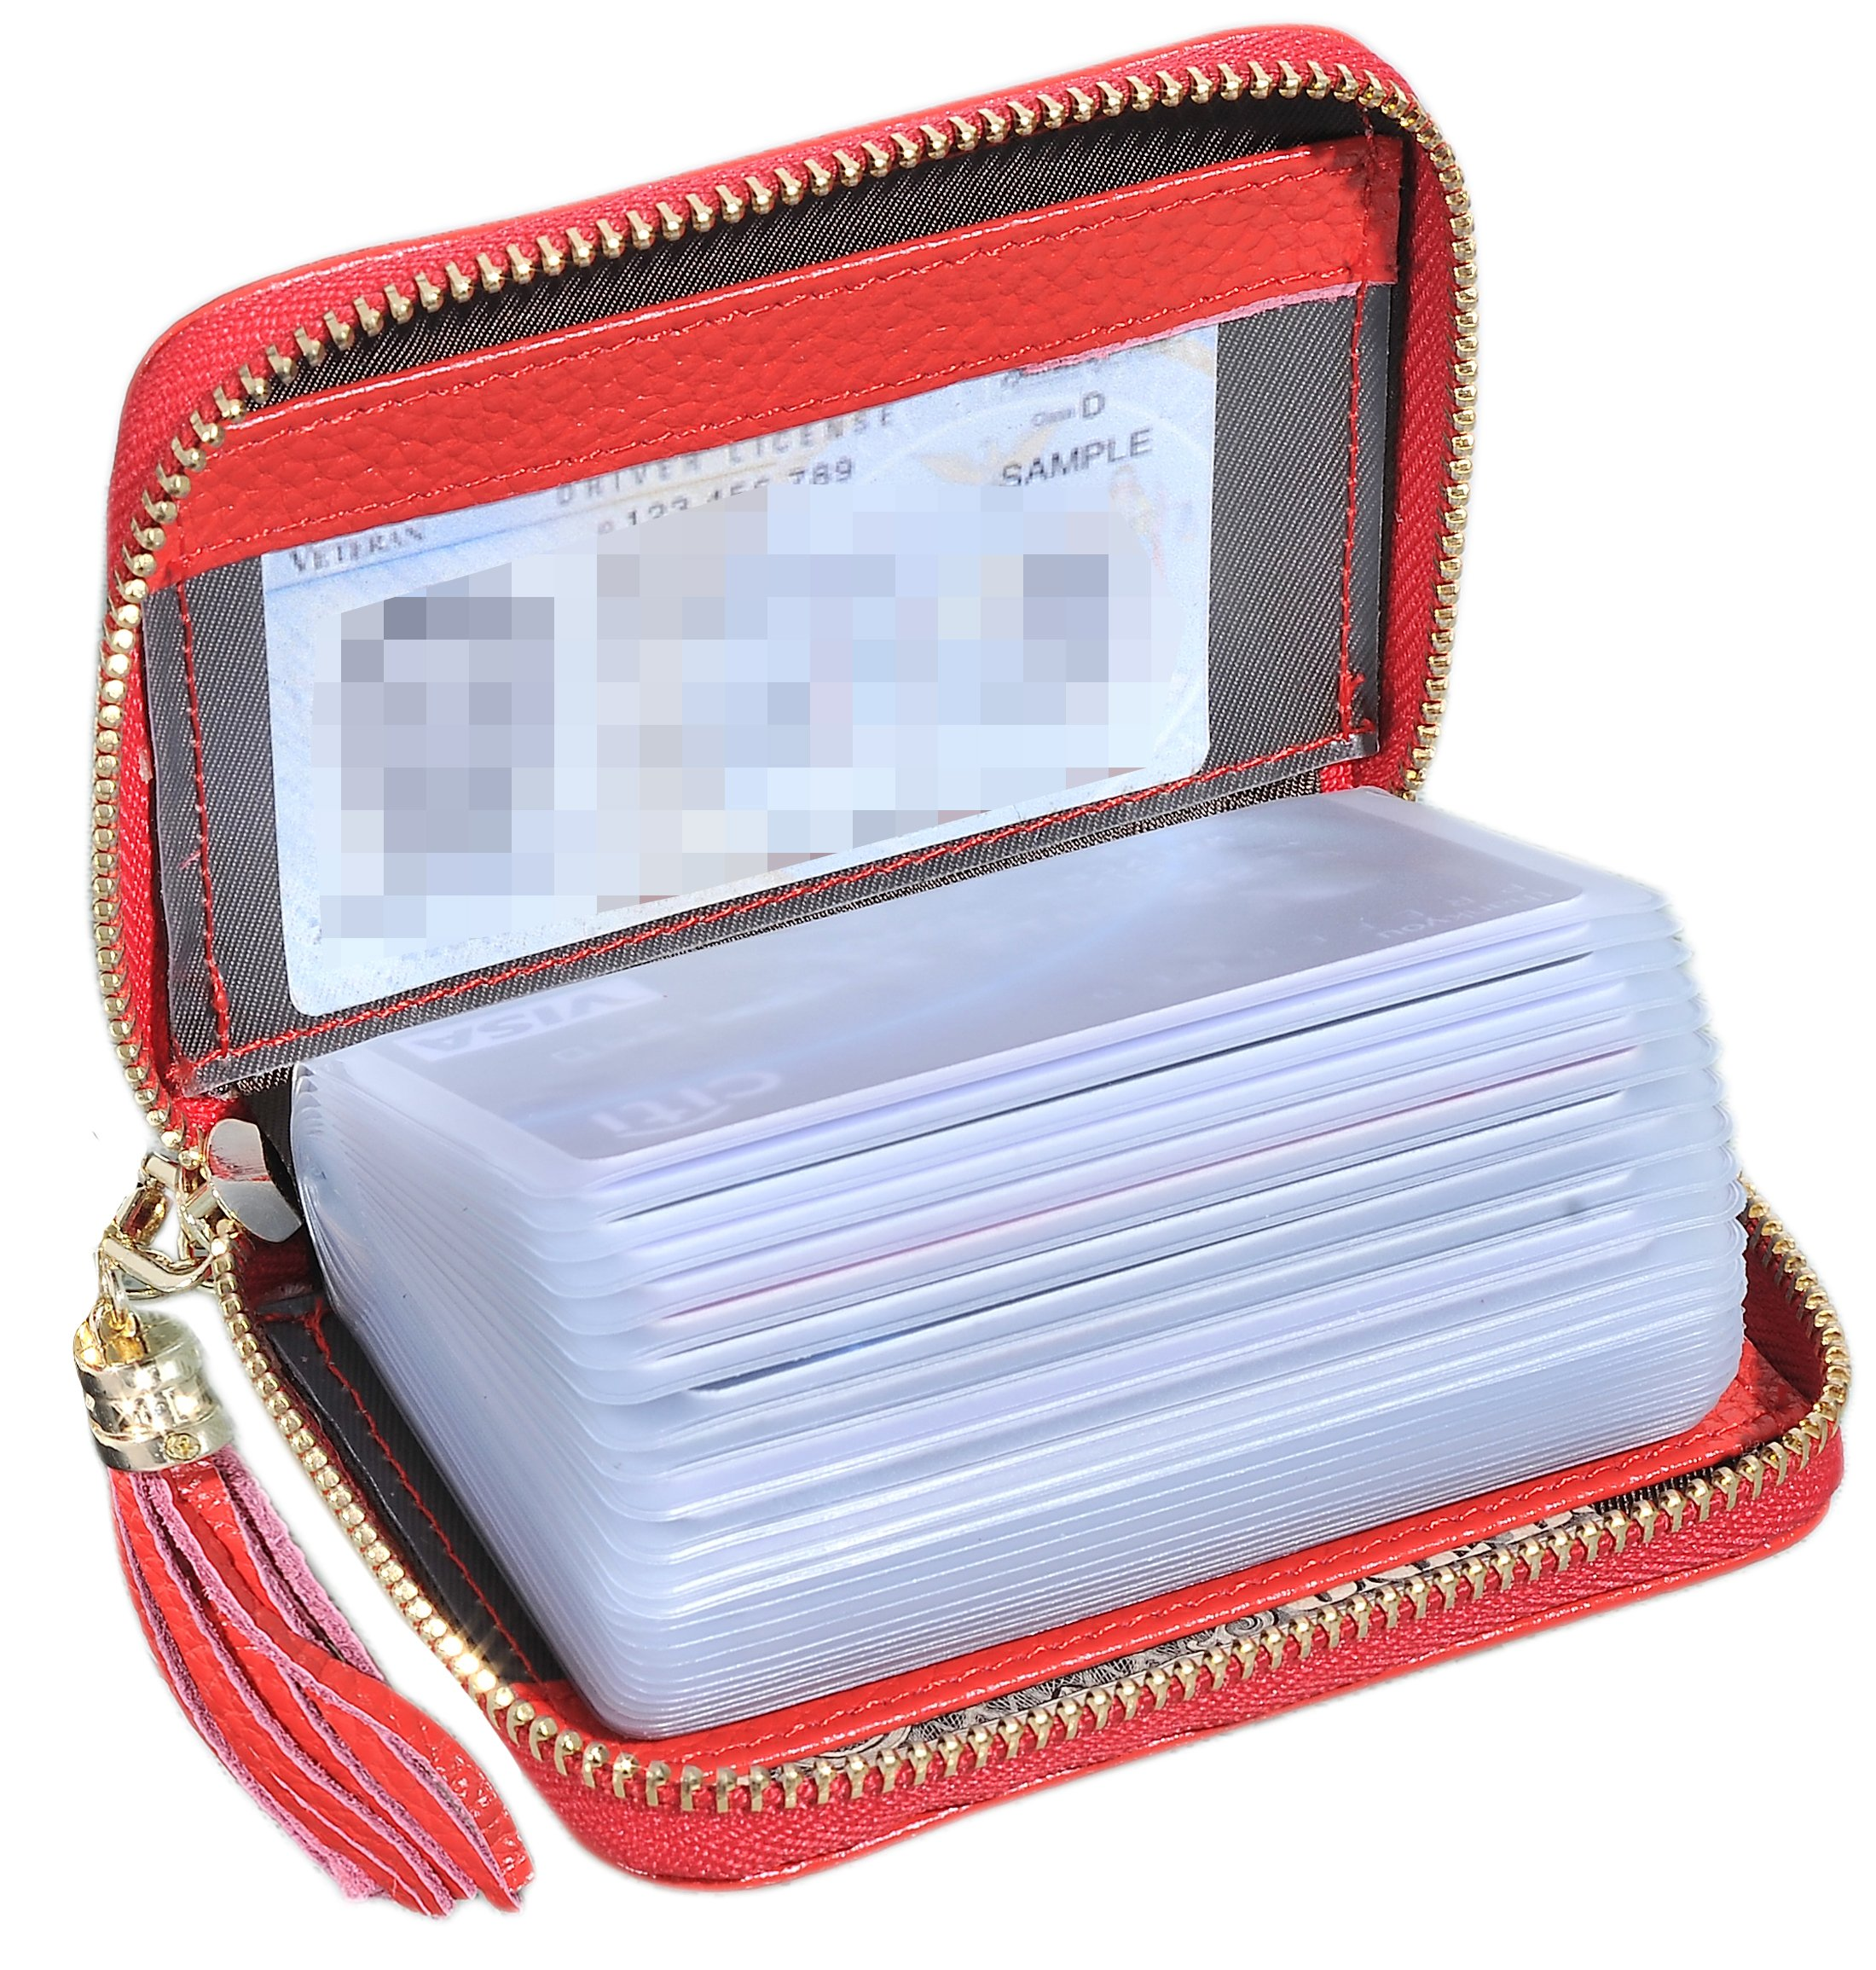 Easyoulife Genuine Leather Credit Card Holder Wallet Zipper Wallet With Tassel (Red)